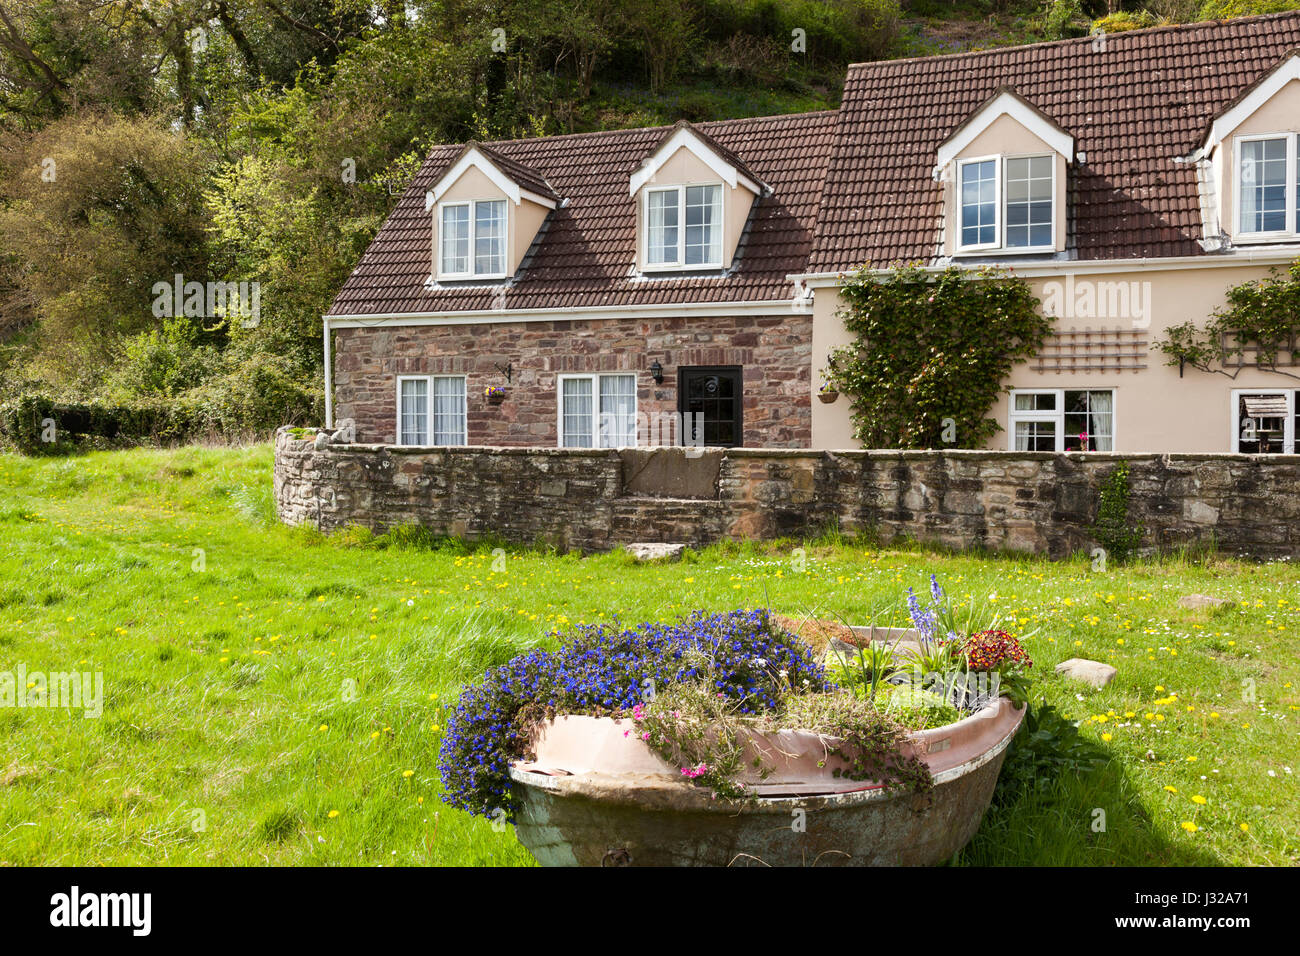 Cottages in the tiny hamlet of Gatcombe on the west bank of the River Severn in Gloucestershire UK - Stock Image